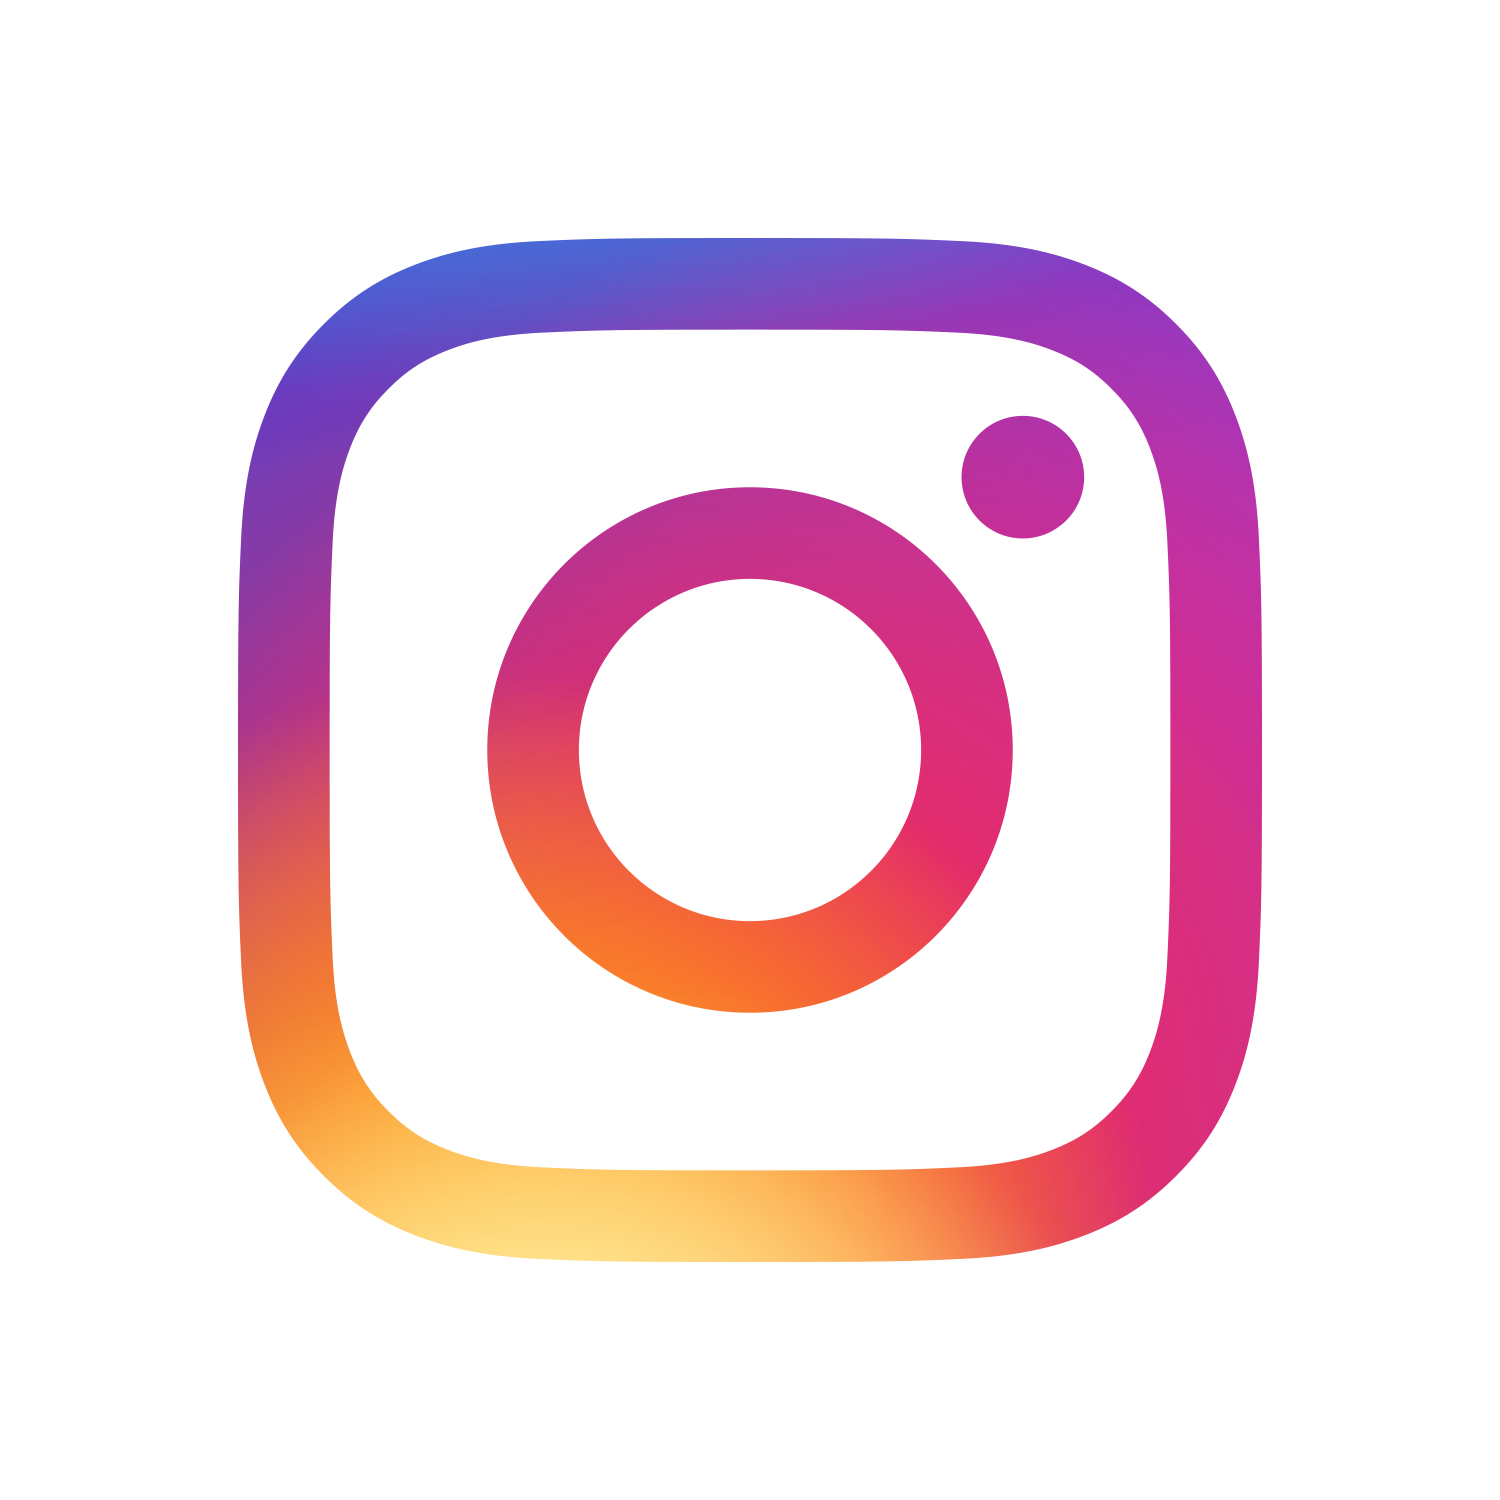 multicolored instagram icon with link to Indian River Mall page